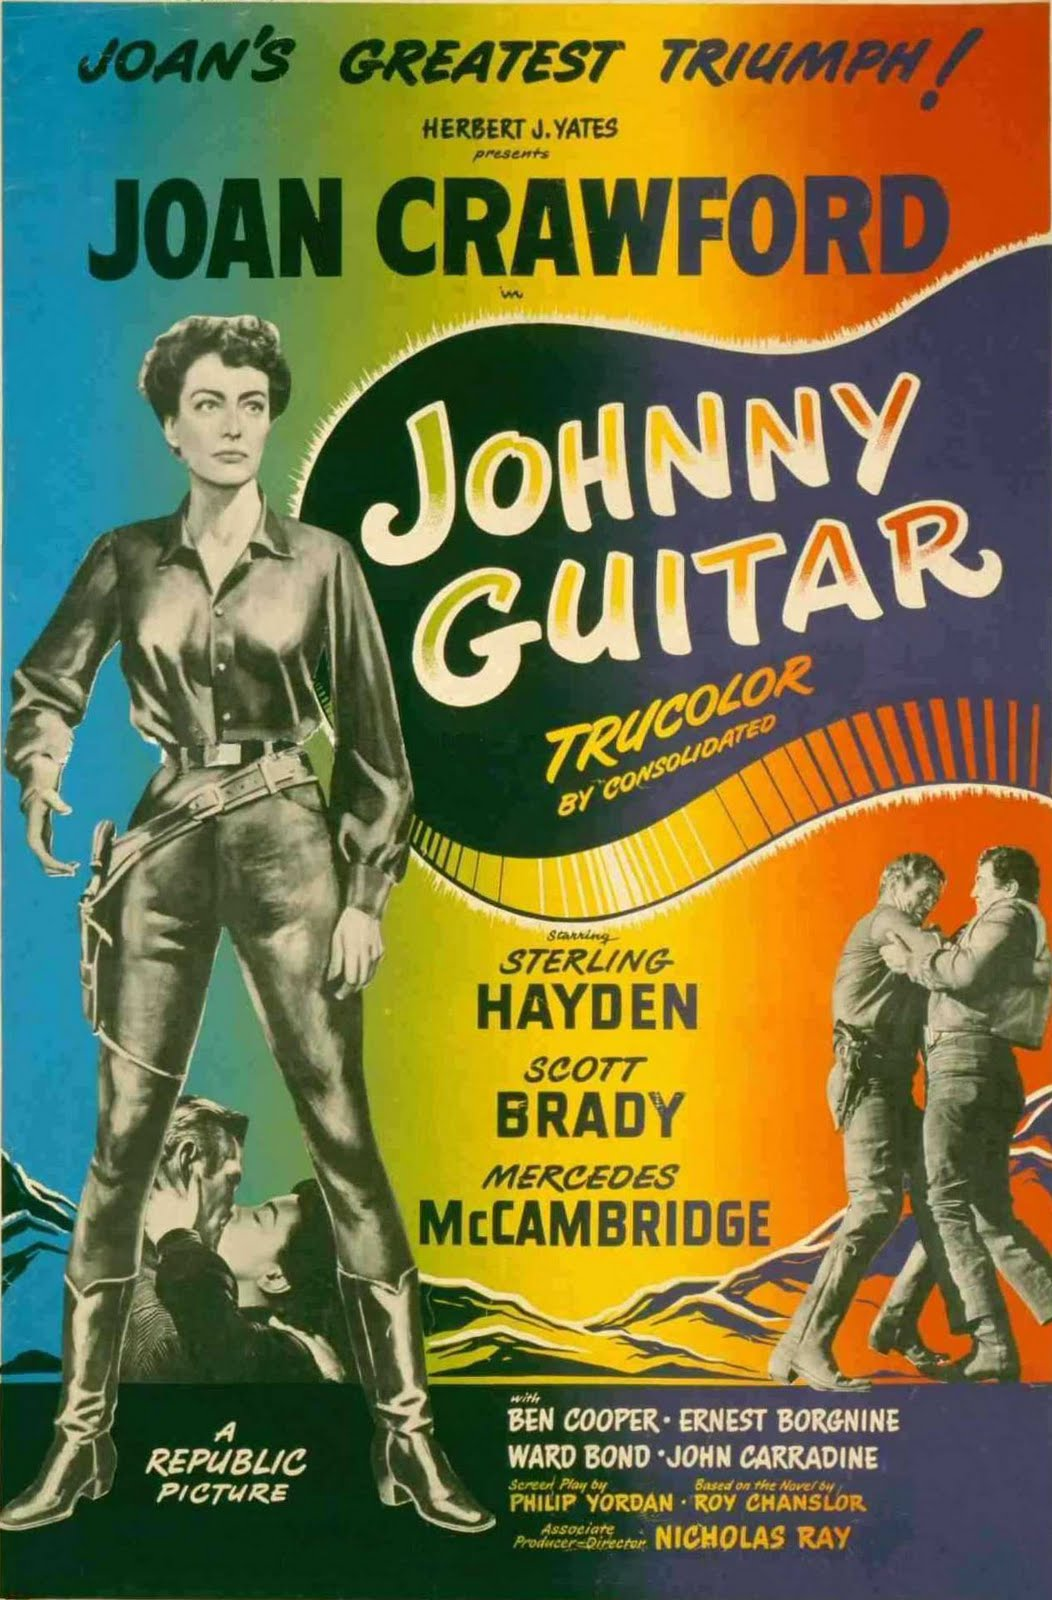 23/08/1954· johnny guitar by peggy lee and victor young sung by peggy lee heard instrumentally over the opening credits and throughout the film played on the piano by joan crawford (dubbed) sung partially at the end by peggy lee top review 8/10 magical and mythic western with unerring sense of style Aspect Ratio Unknown: Johnny Guitar (1954)